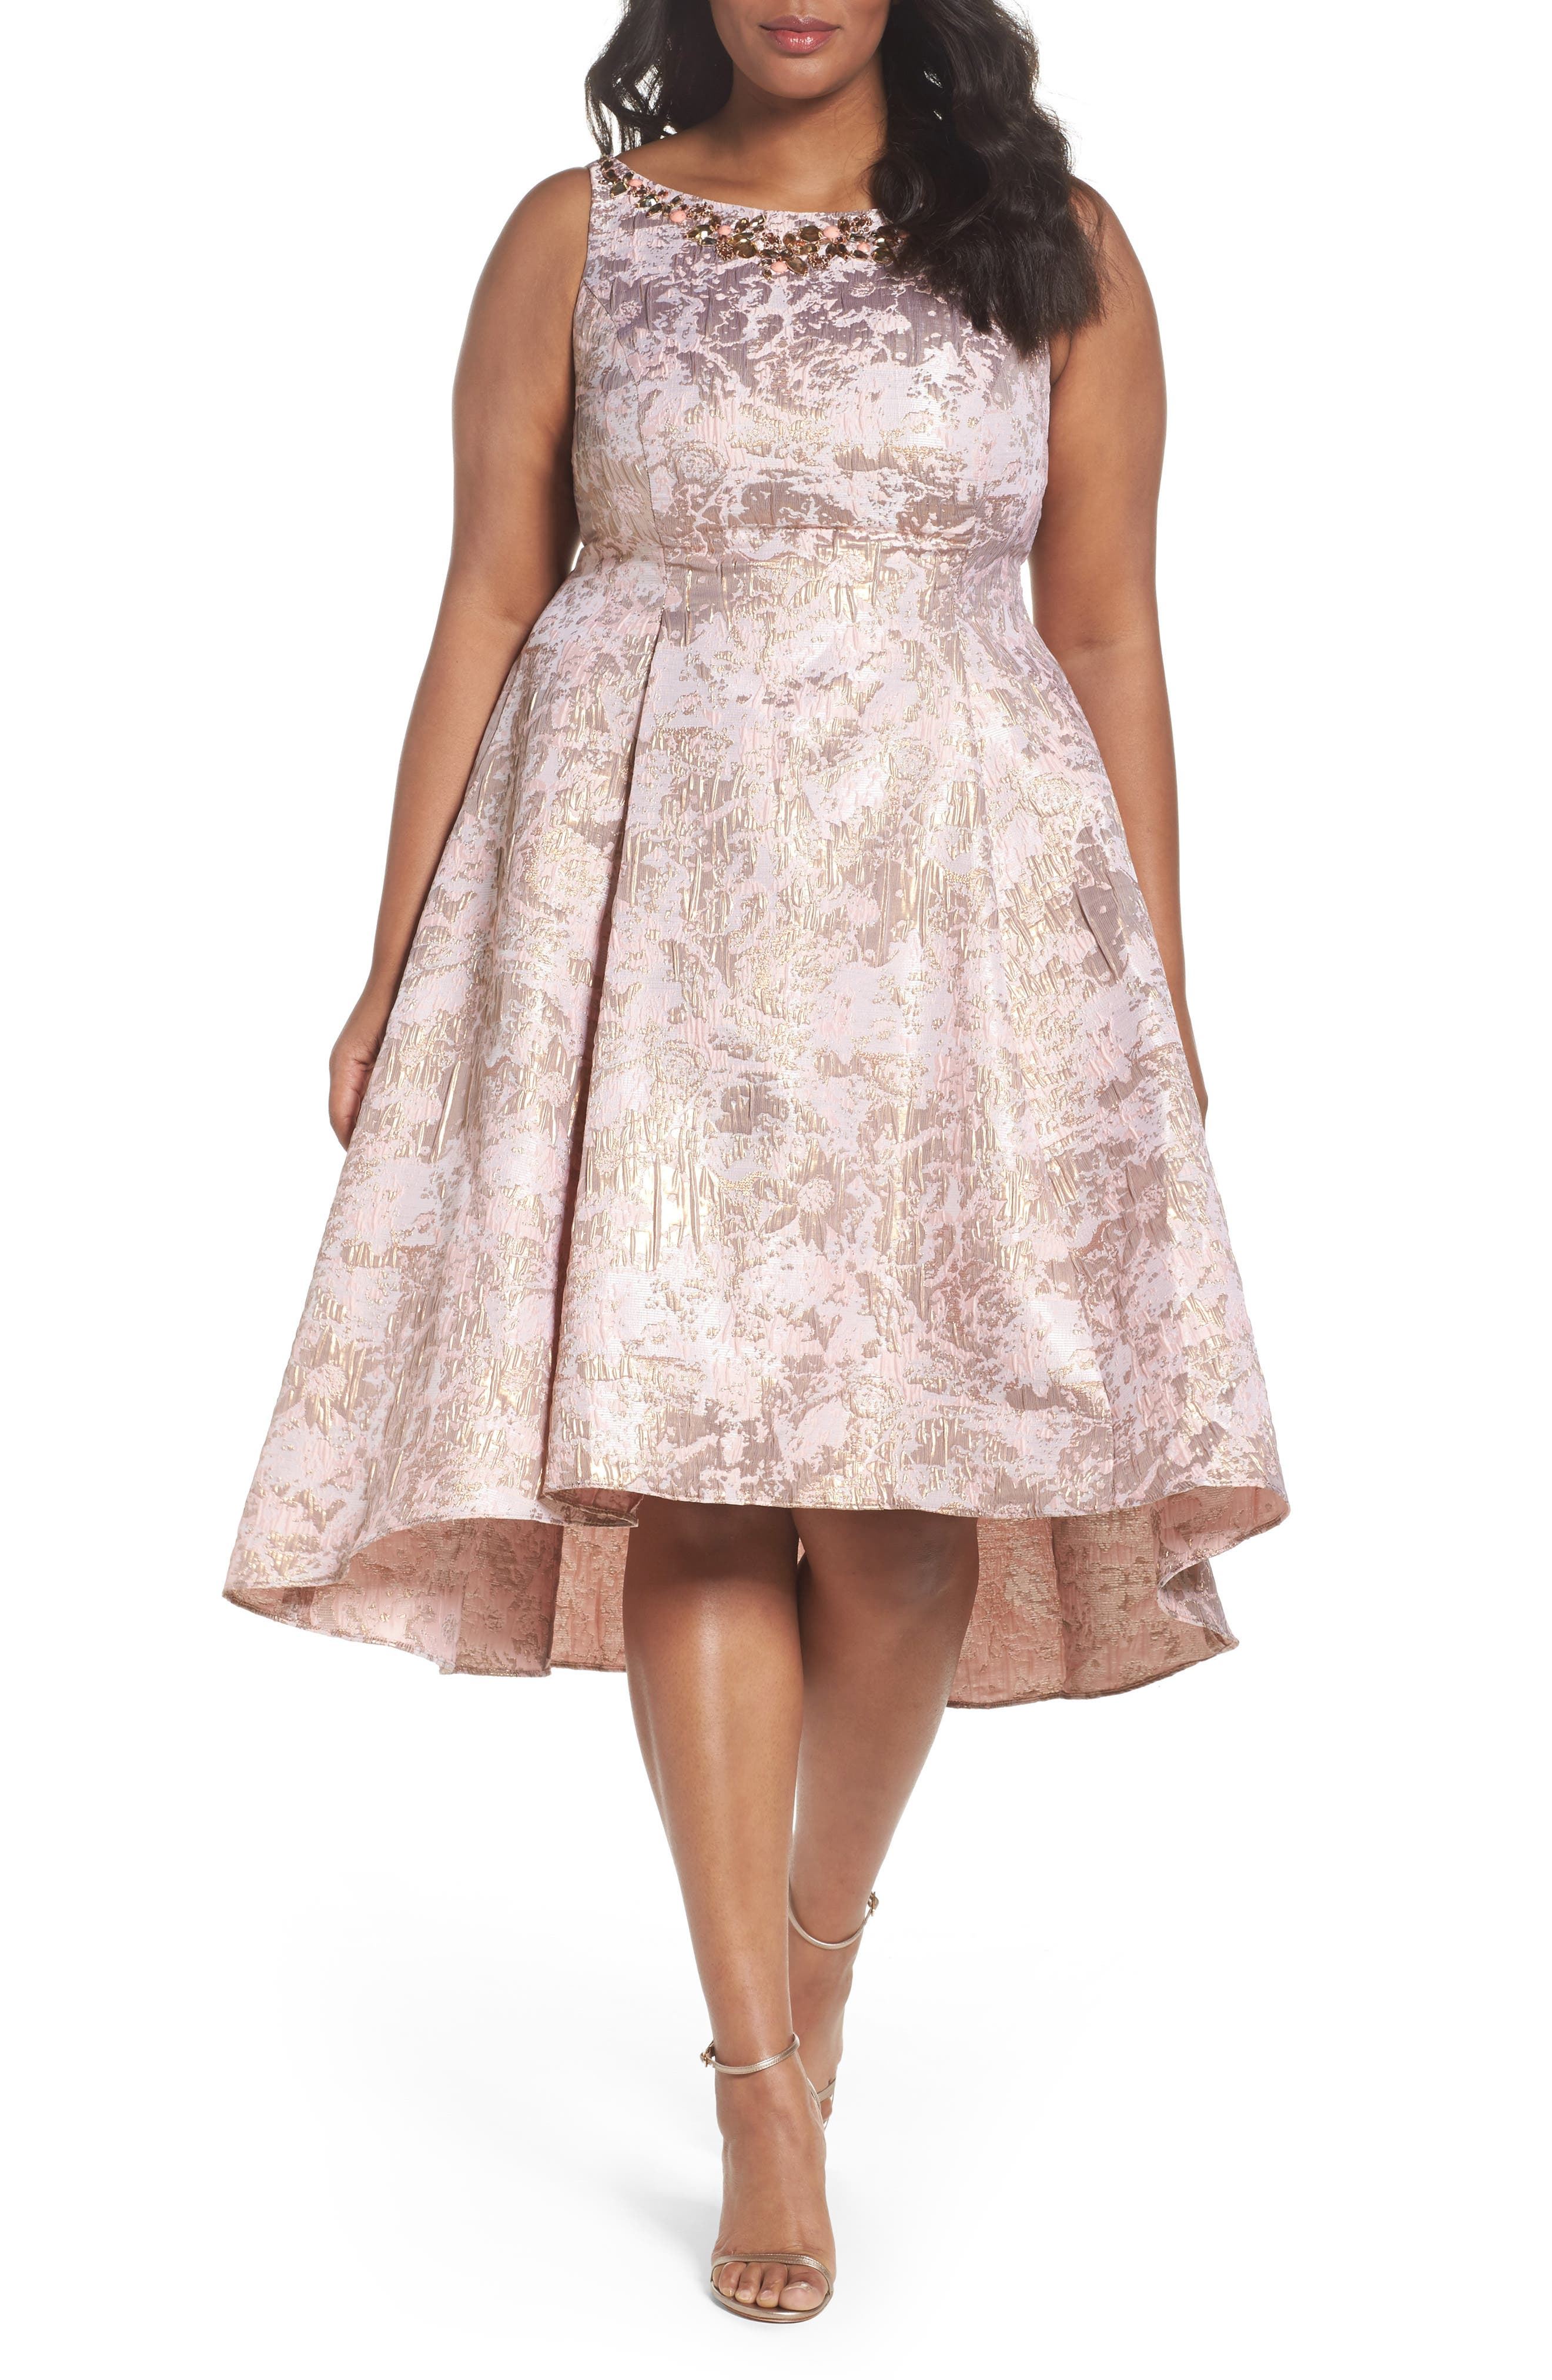 ADRIANNA PAPELL Embellished Metallic Jacquard Party Dress